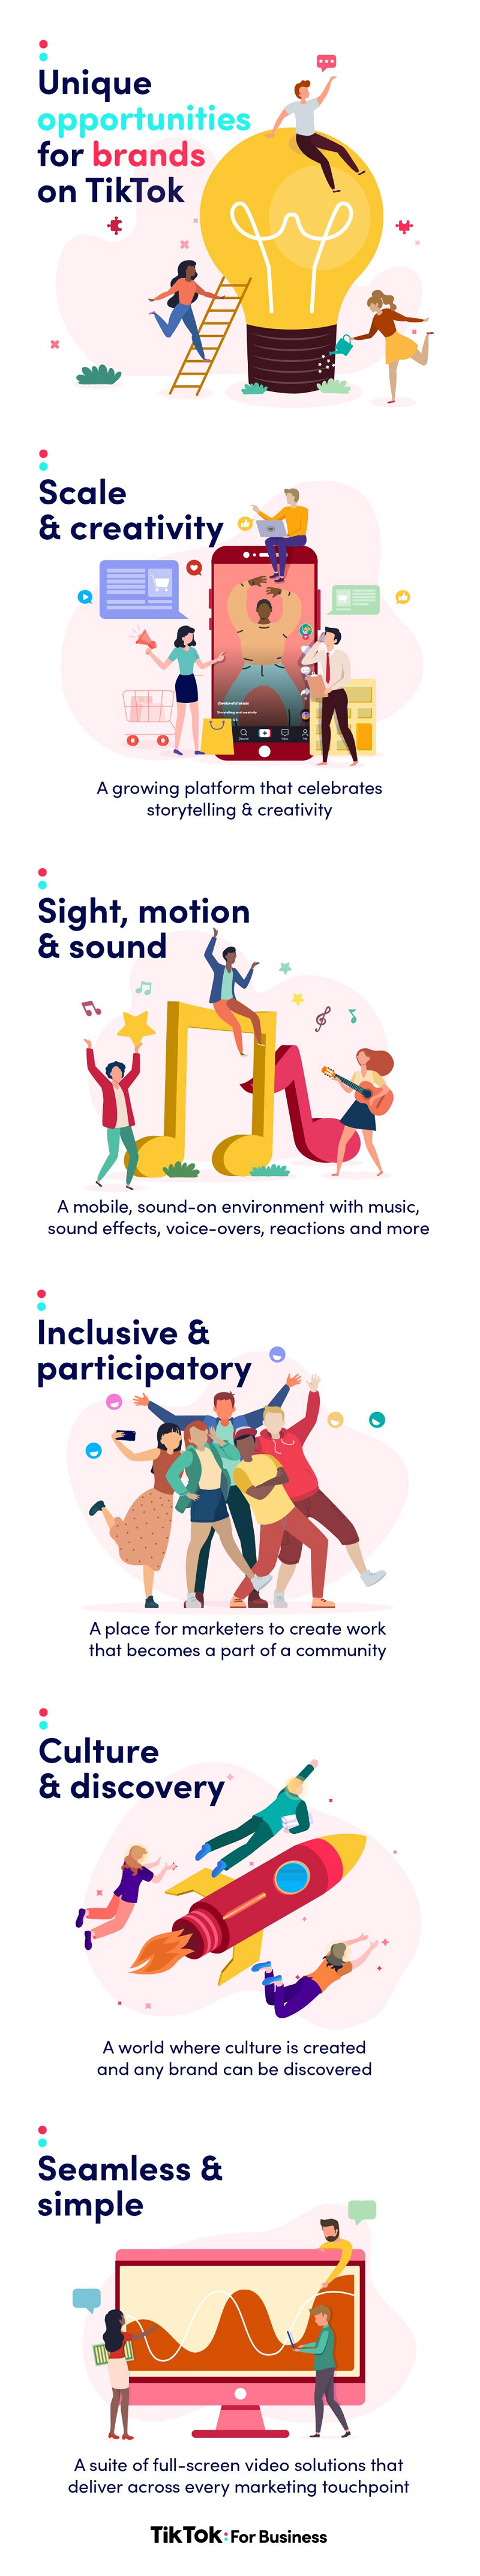 TikTok for marketing infographic